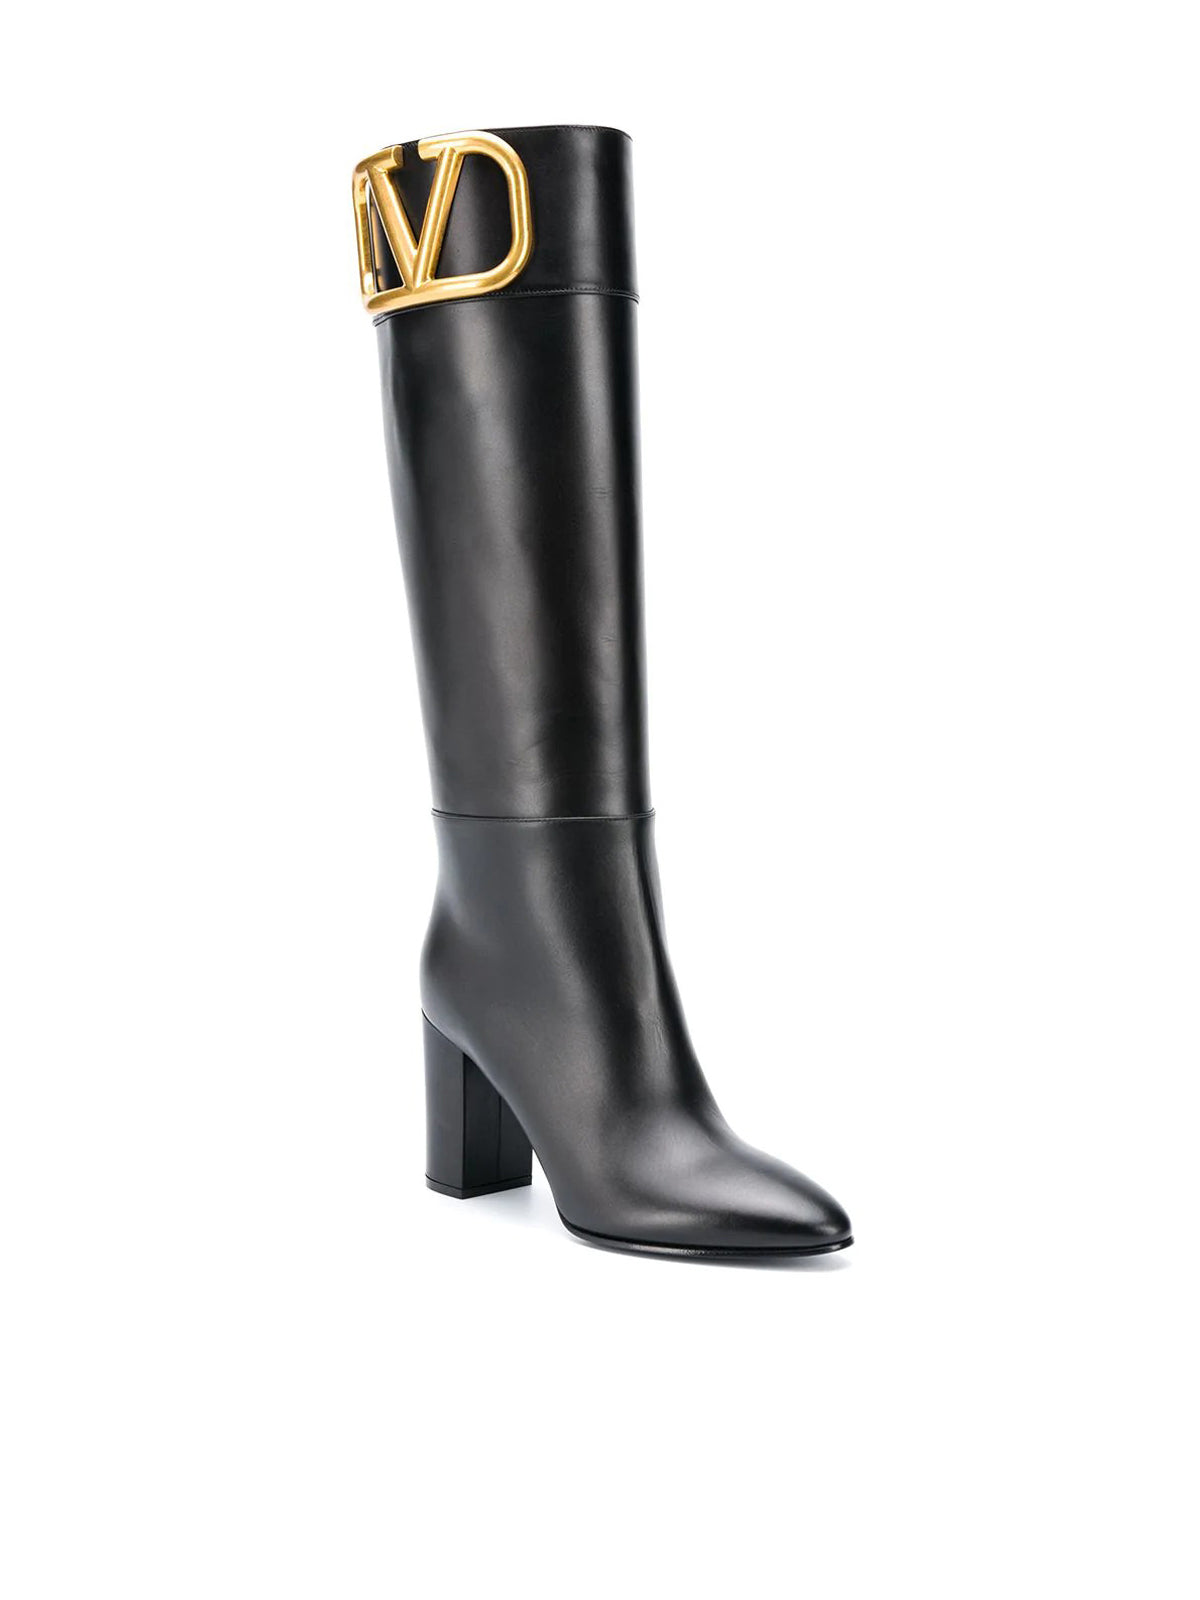 Supervee knee-length boots